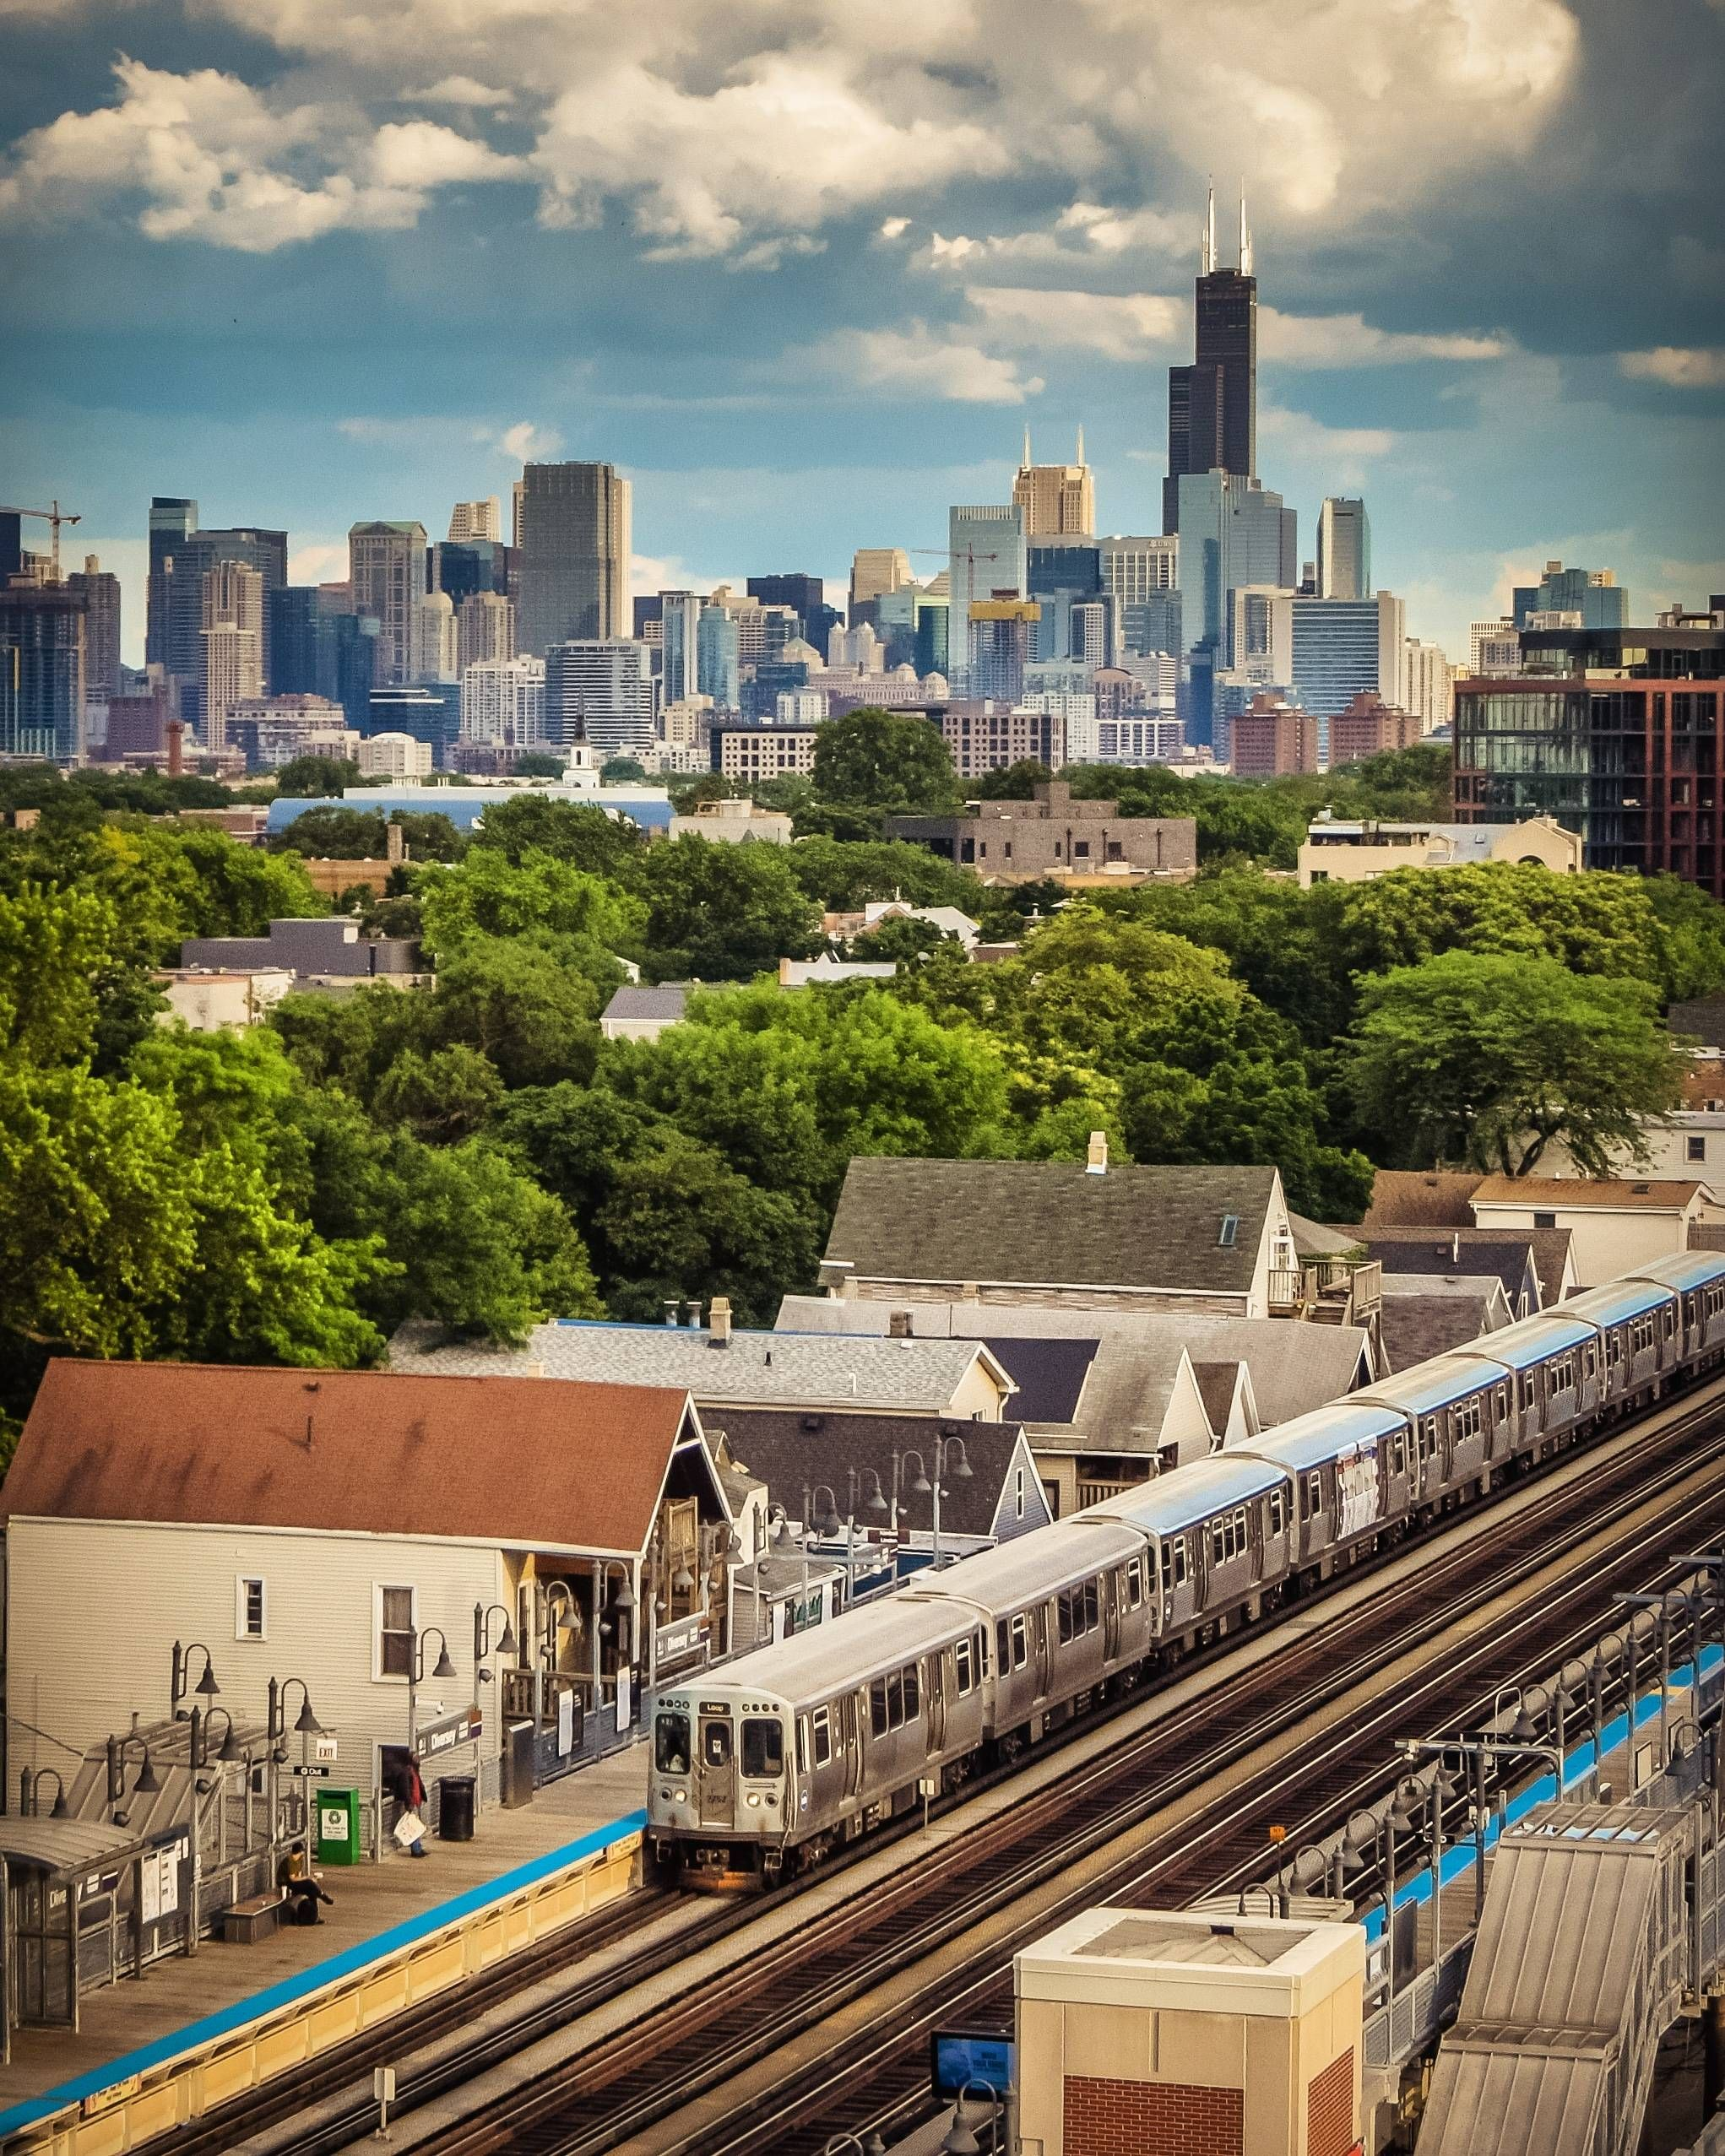 Doors Open On The Right At Diversey [Chicago IL USA] in